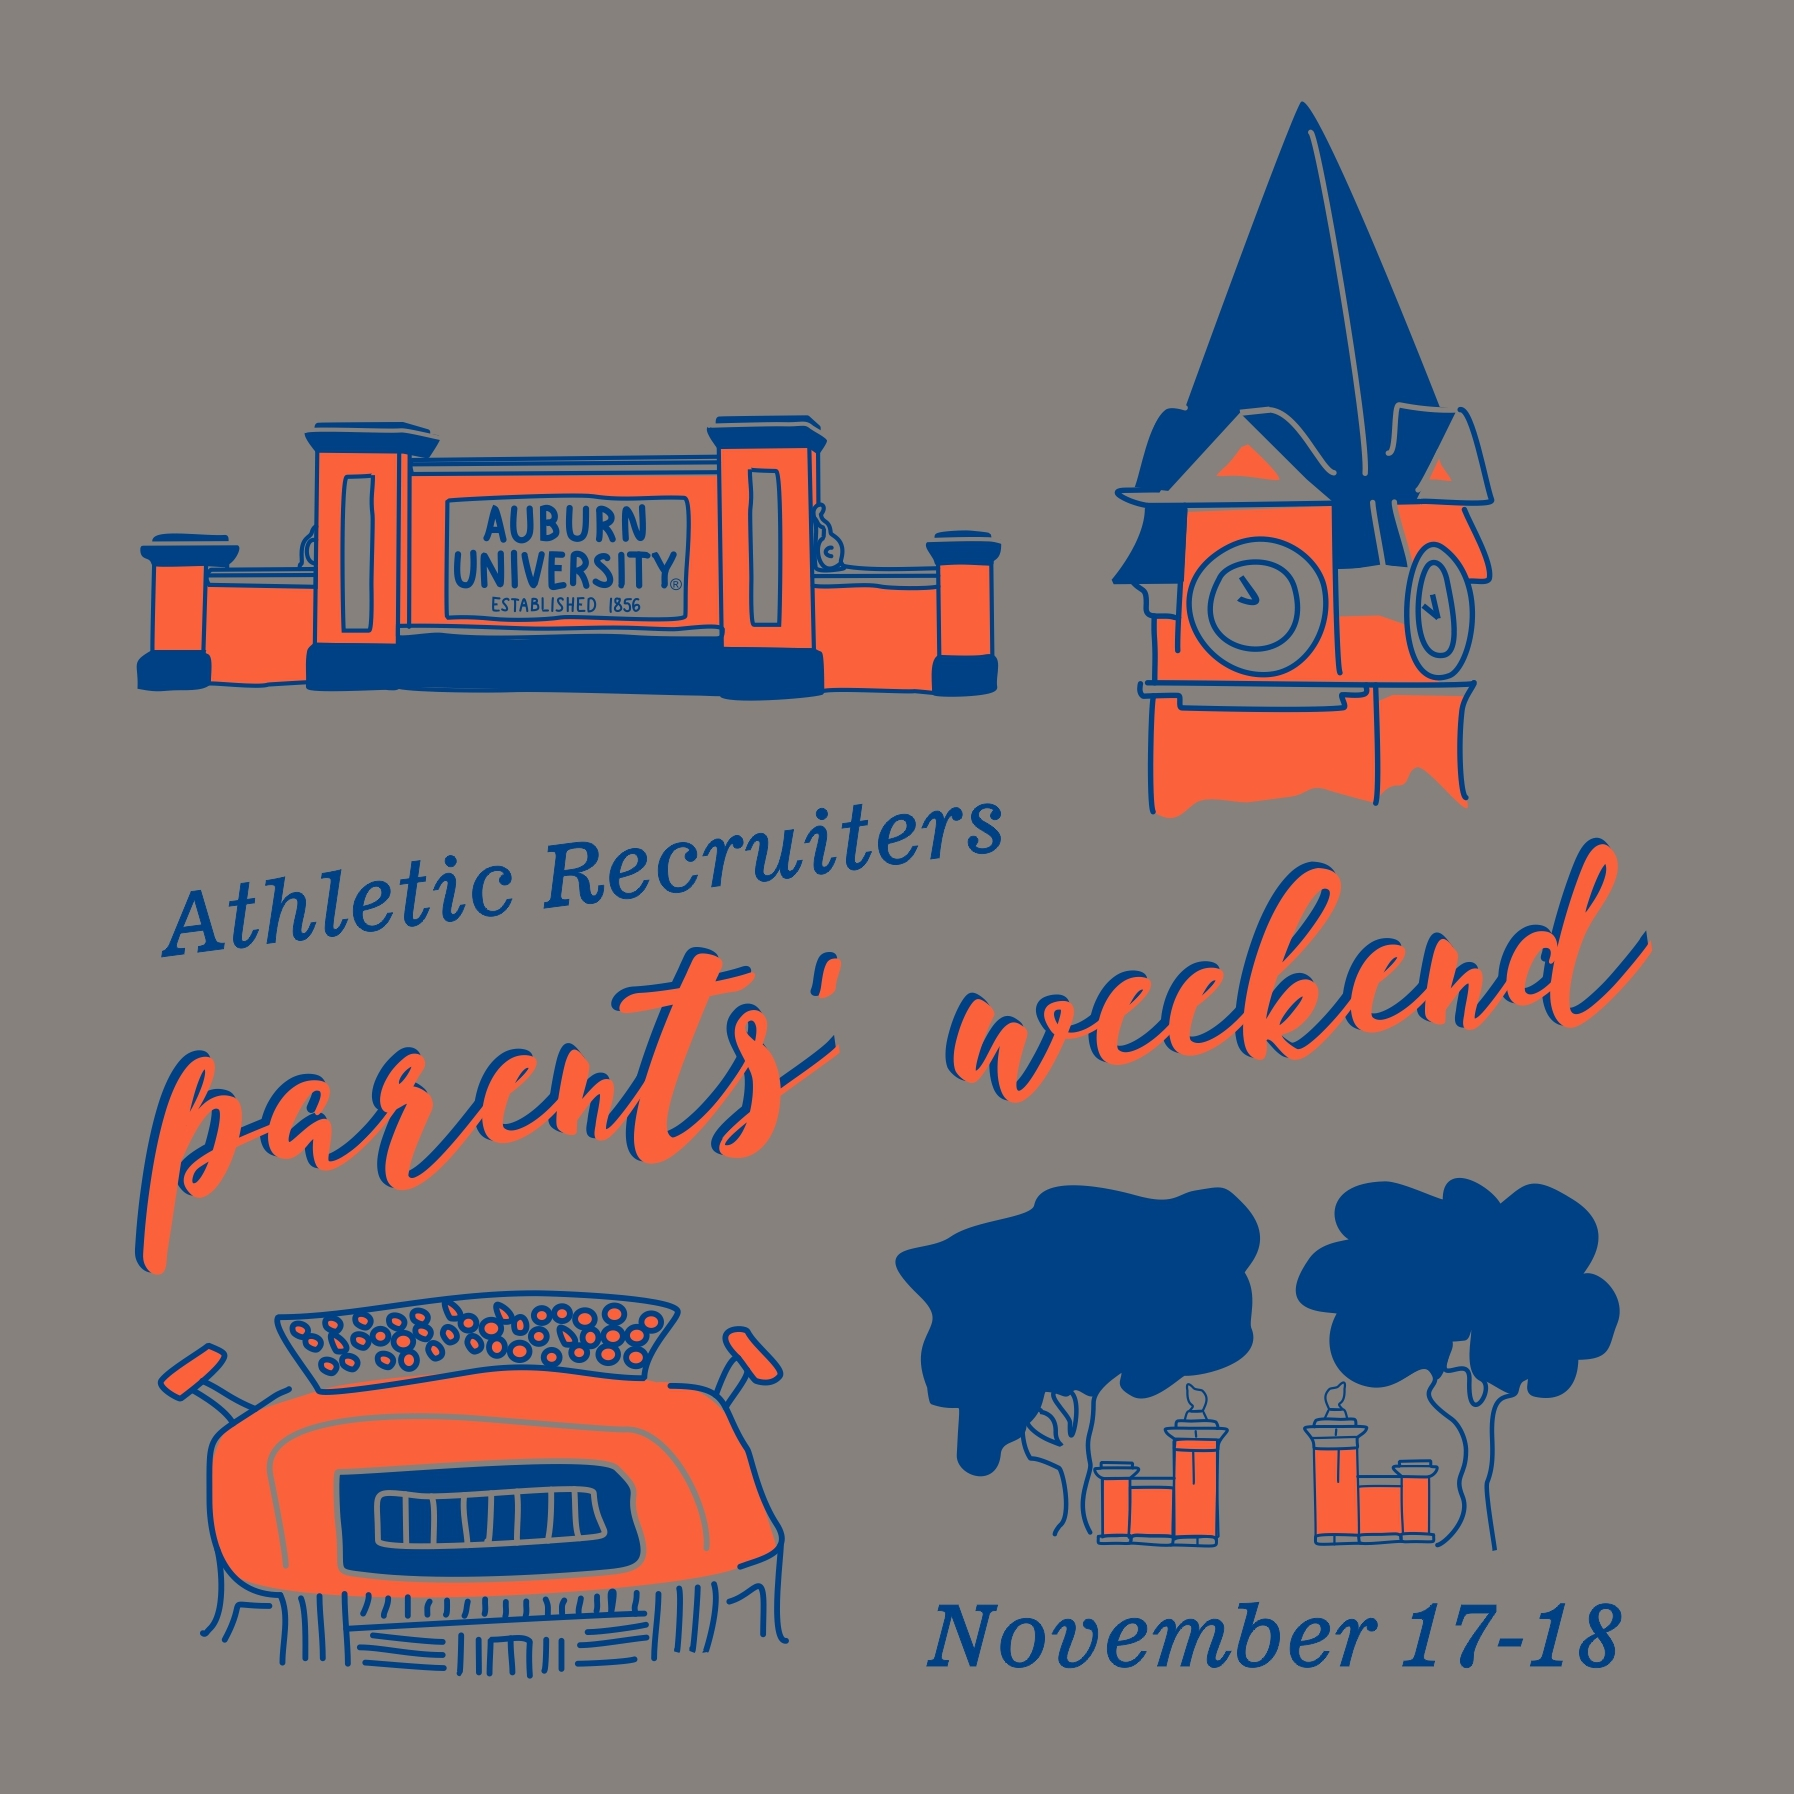 AU_parents_weekend_athletic_recruiters.jpg